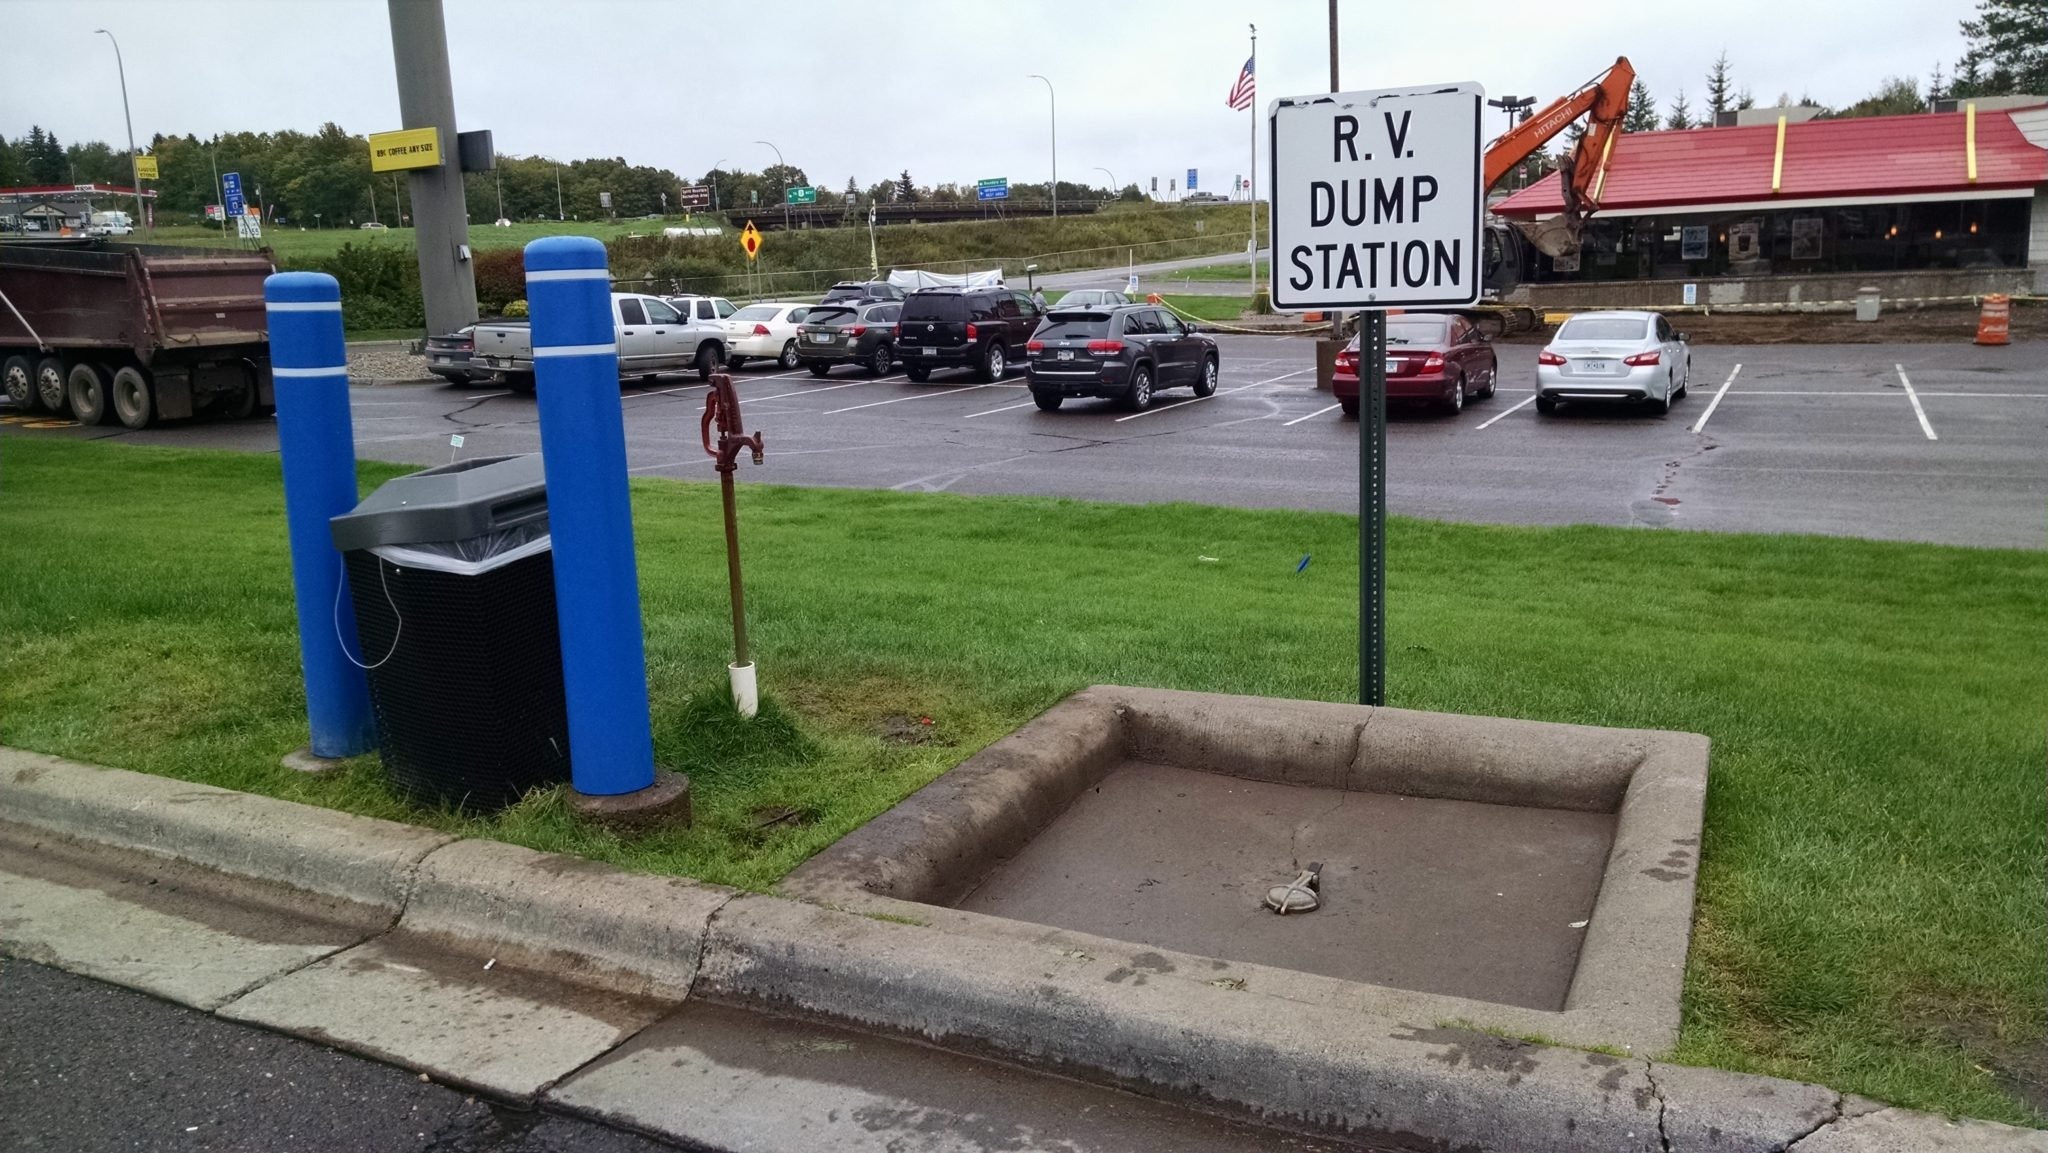 Free Rv Dump Station At Holiday Stationstores In Proctor